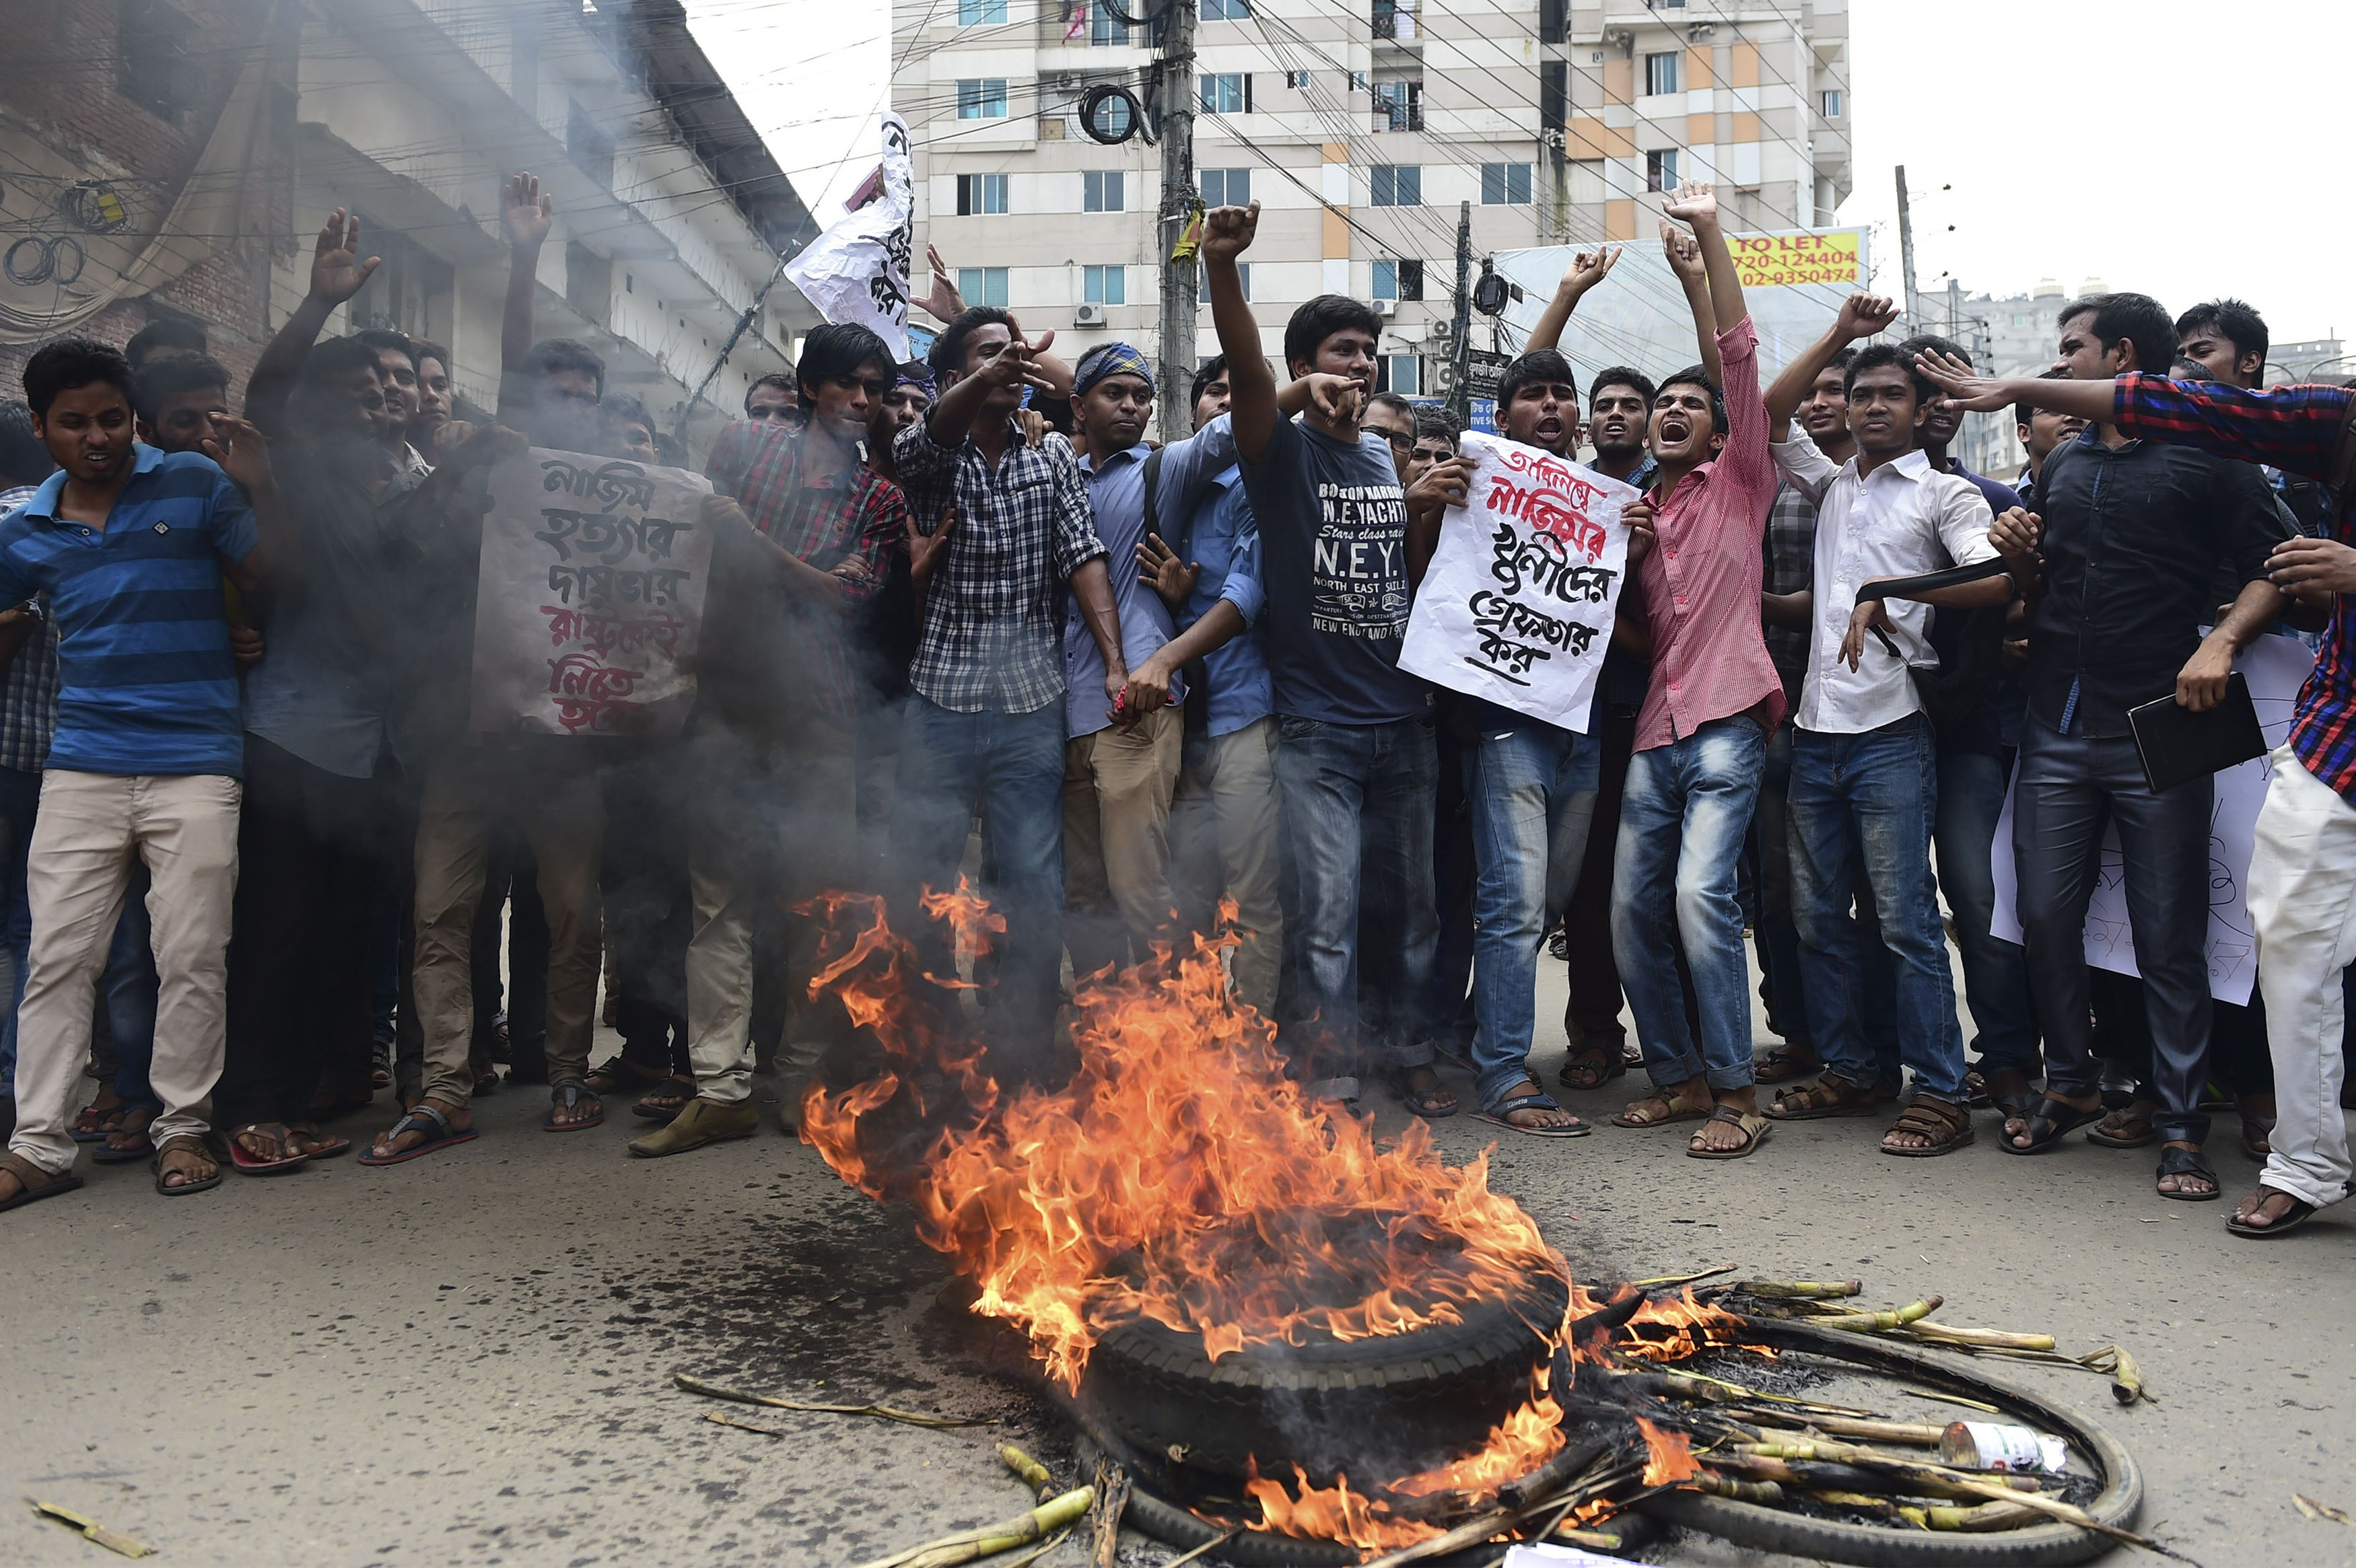 Bangladeshi students block the road and stage a protest following the murder of a law student who posted against Islamism on Facebook and was hacked to death by four assailants the night before, in Dhaka on April 7, 2016.